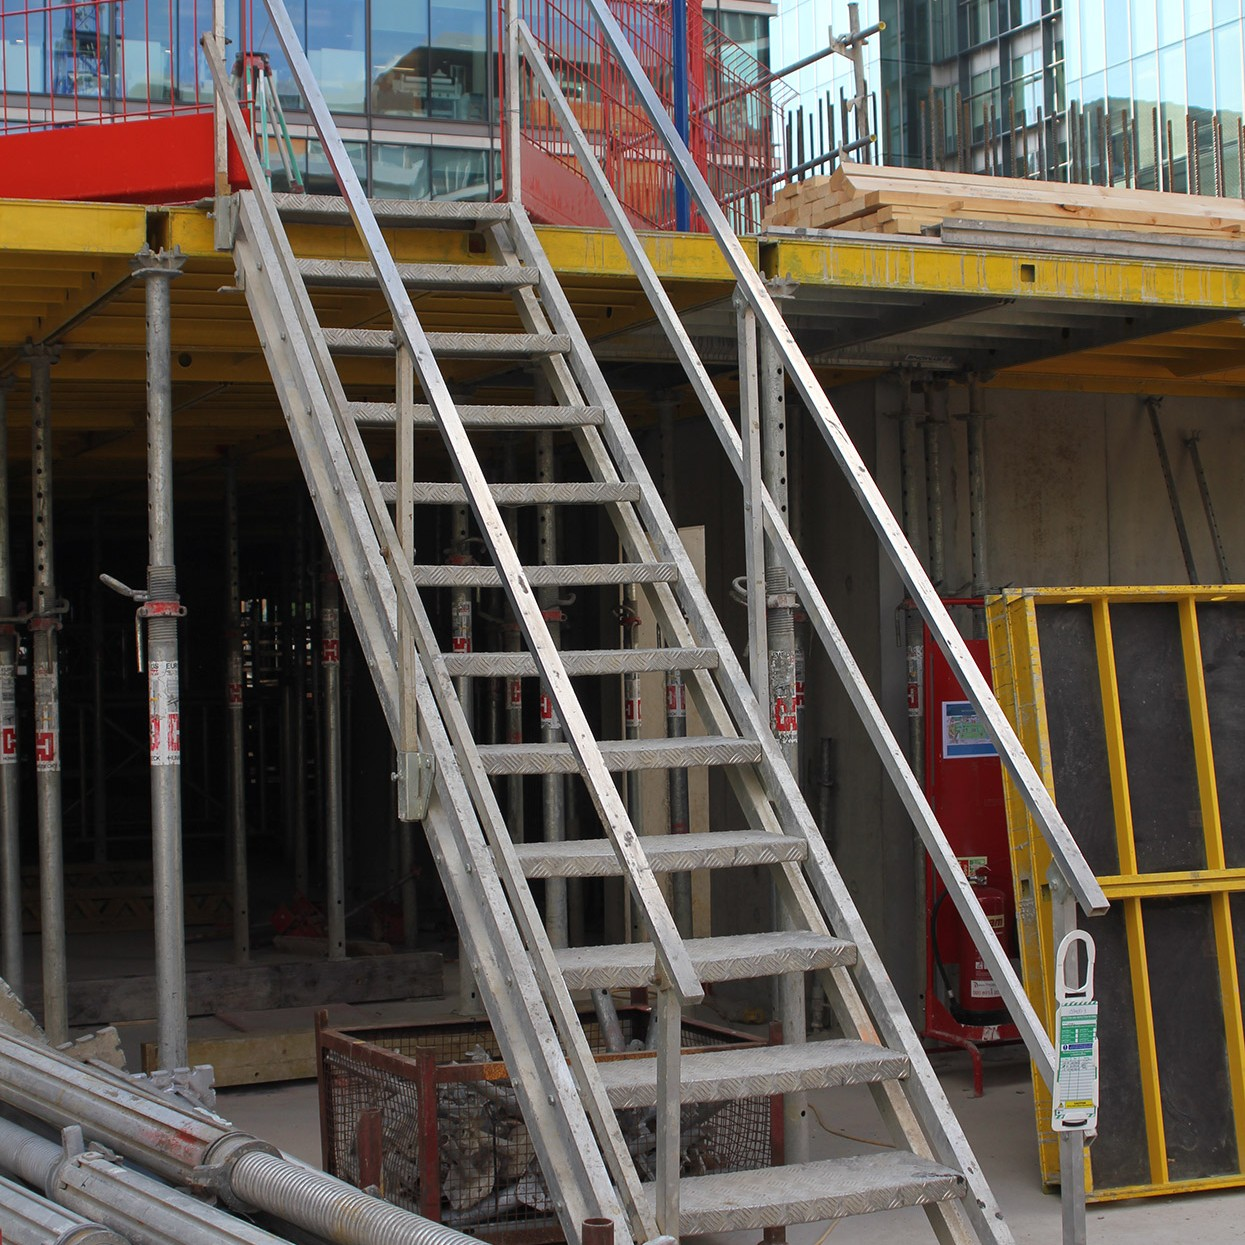 Adjustable Scaffolding For Stairs : Site stairs embankments j safe ltd temporary edge